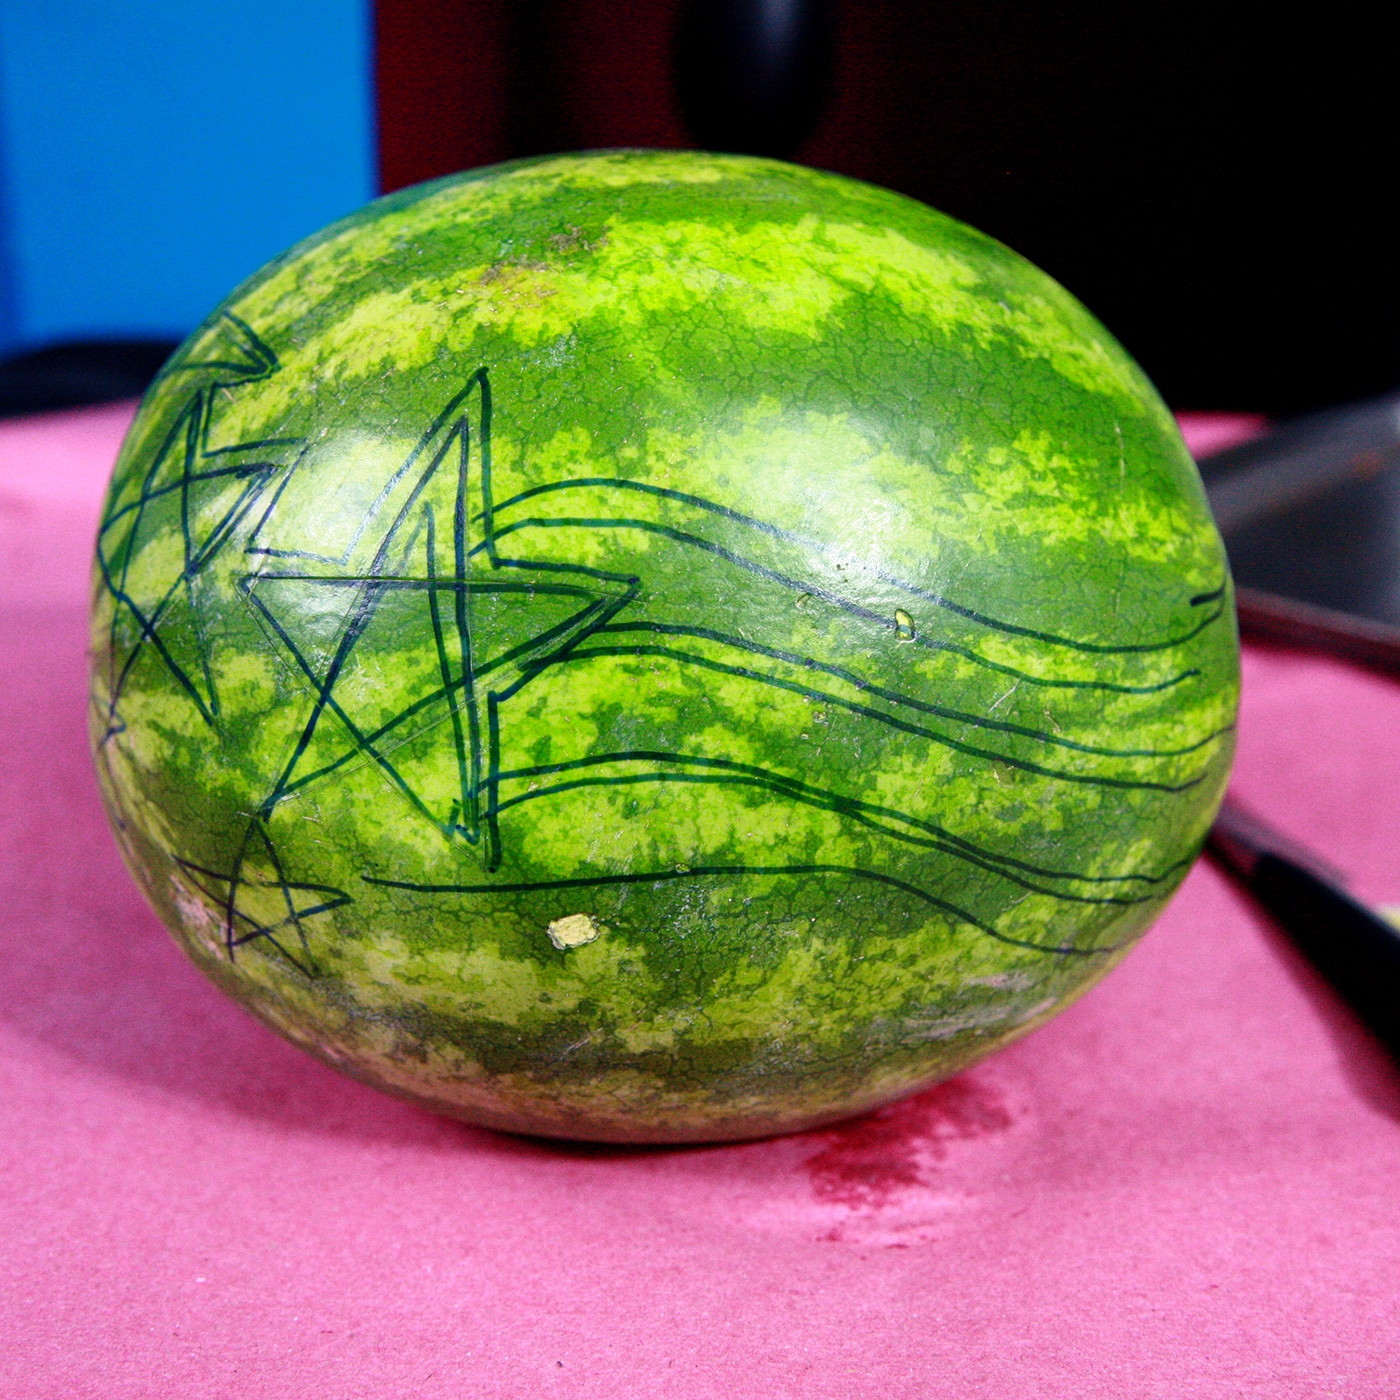 A stars and stripes design has been drawn on a watermelon with a black sharpie marker.